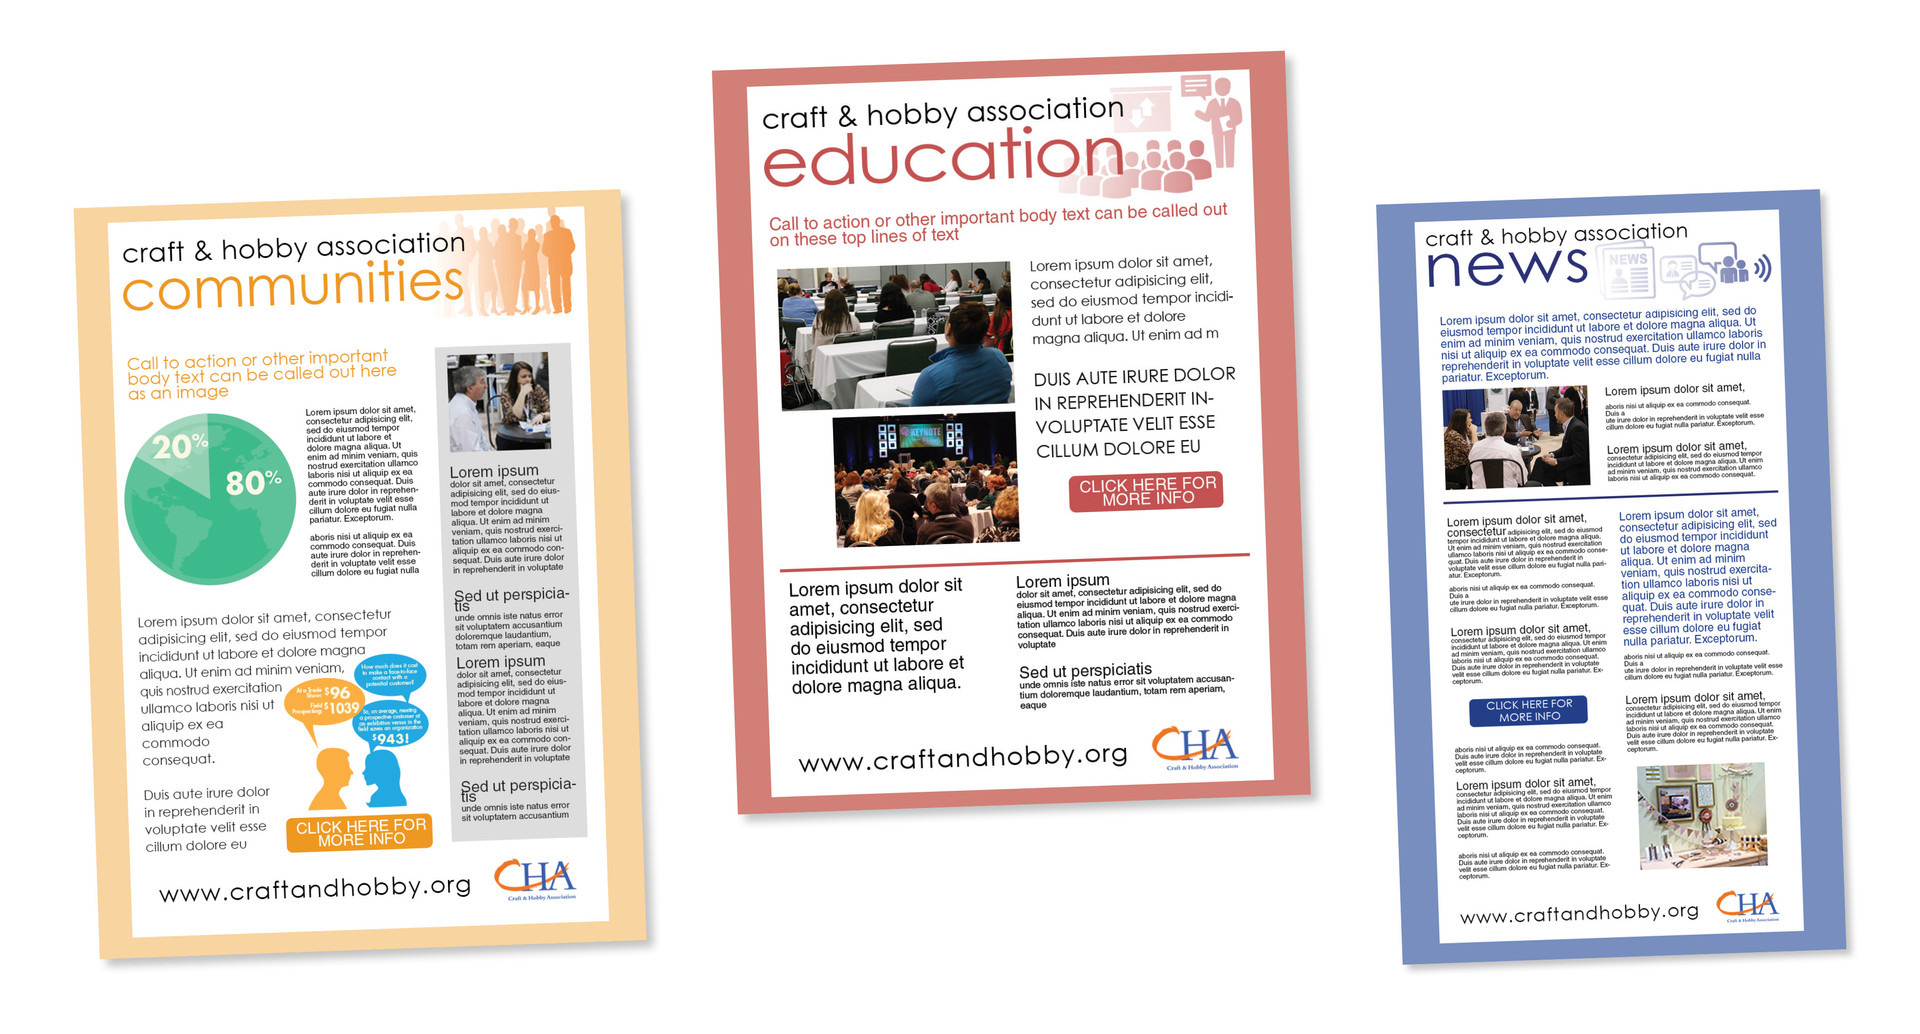 CHA Email Newsletter Series 2